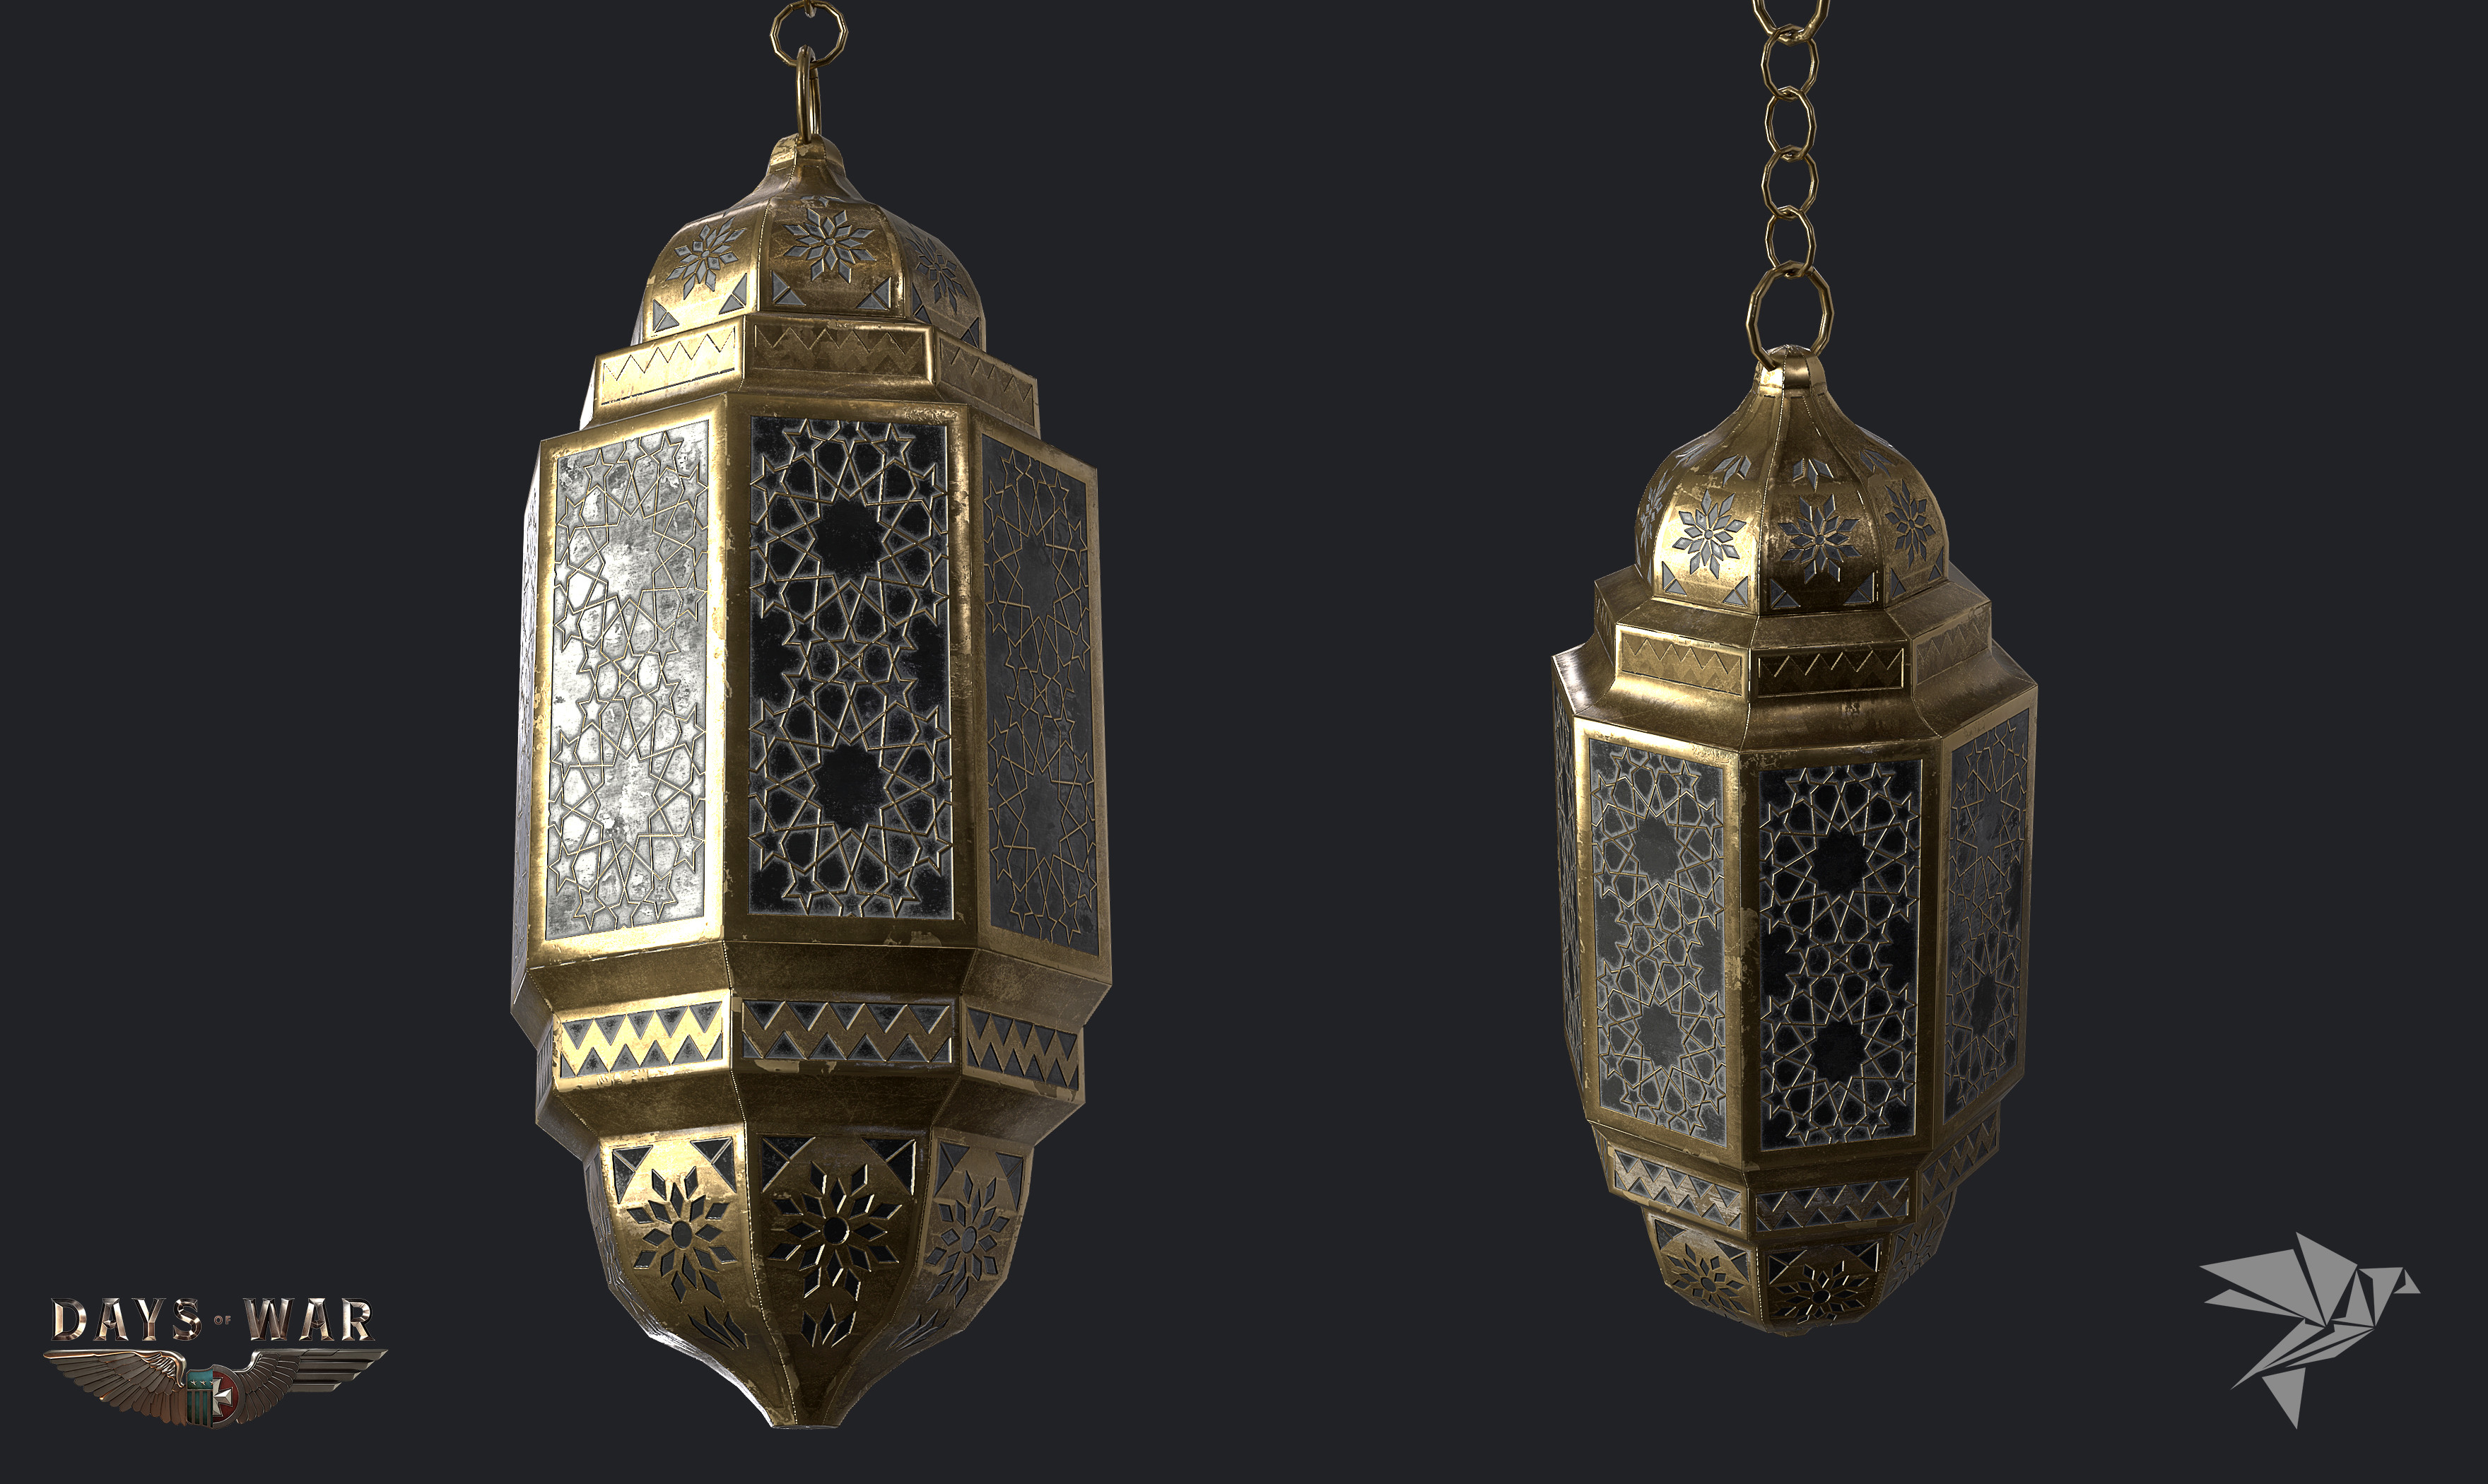 French-Morocco Lamp